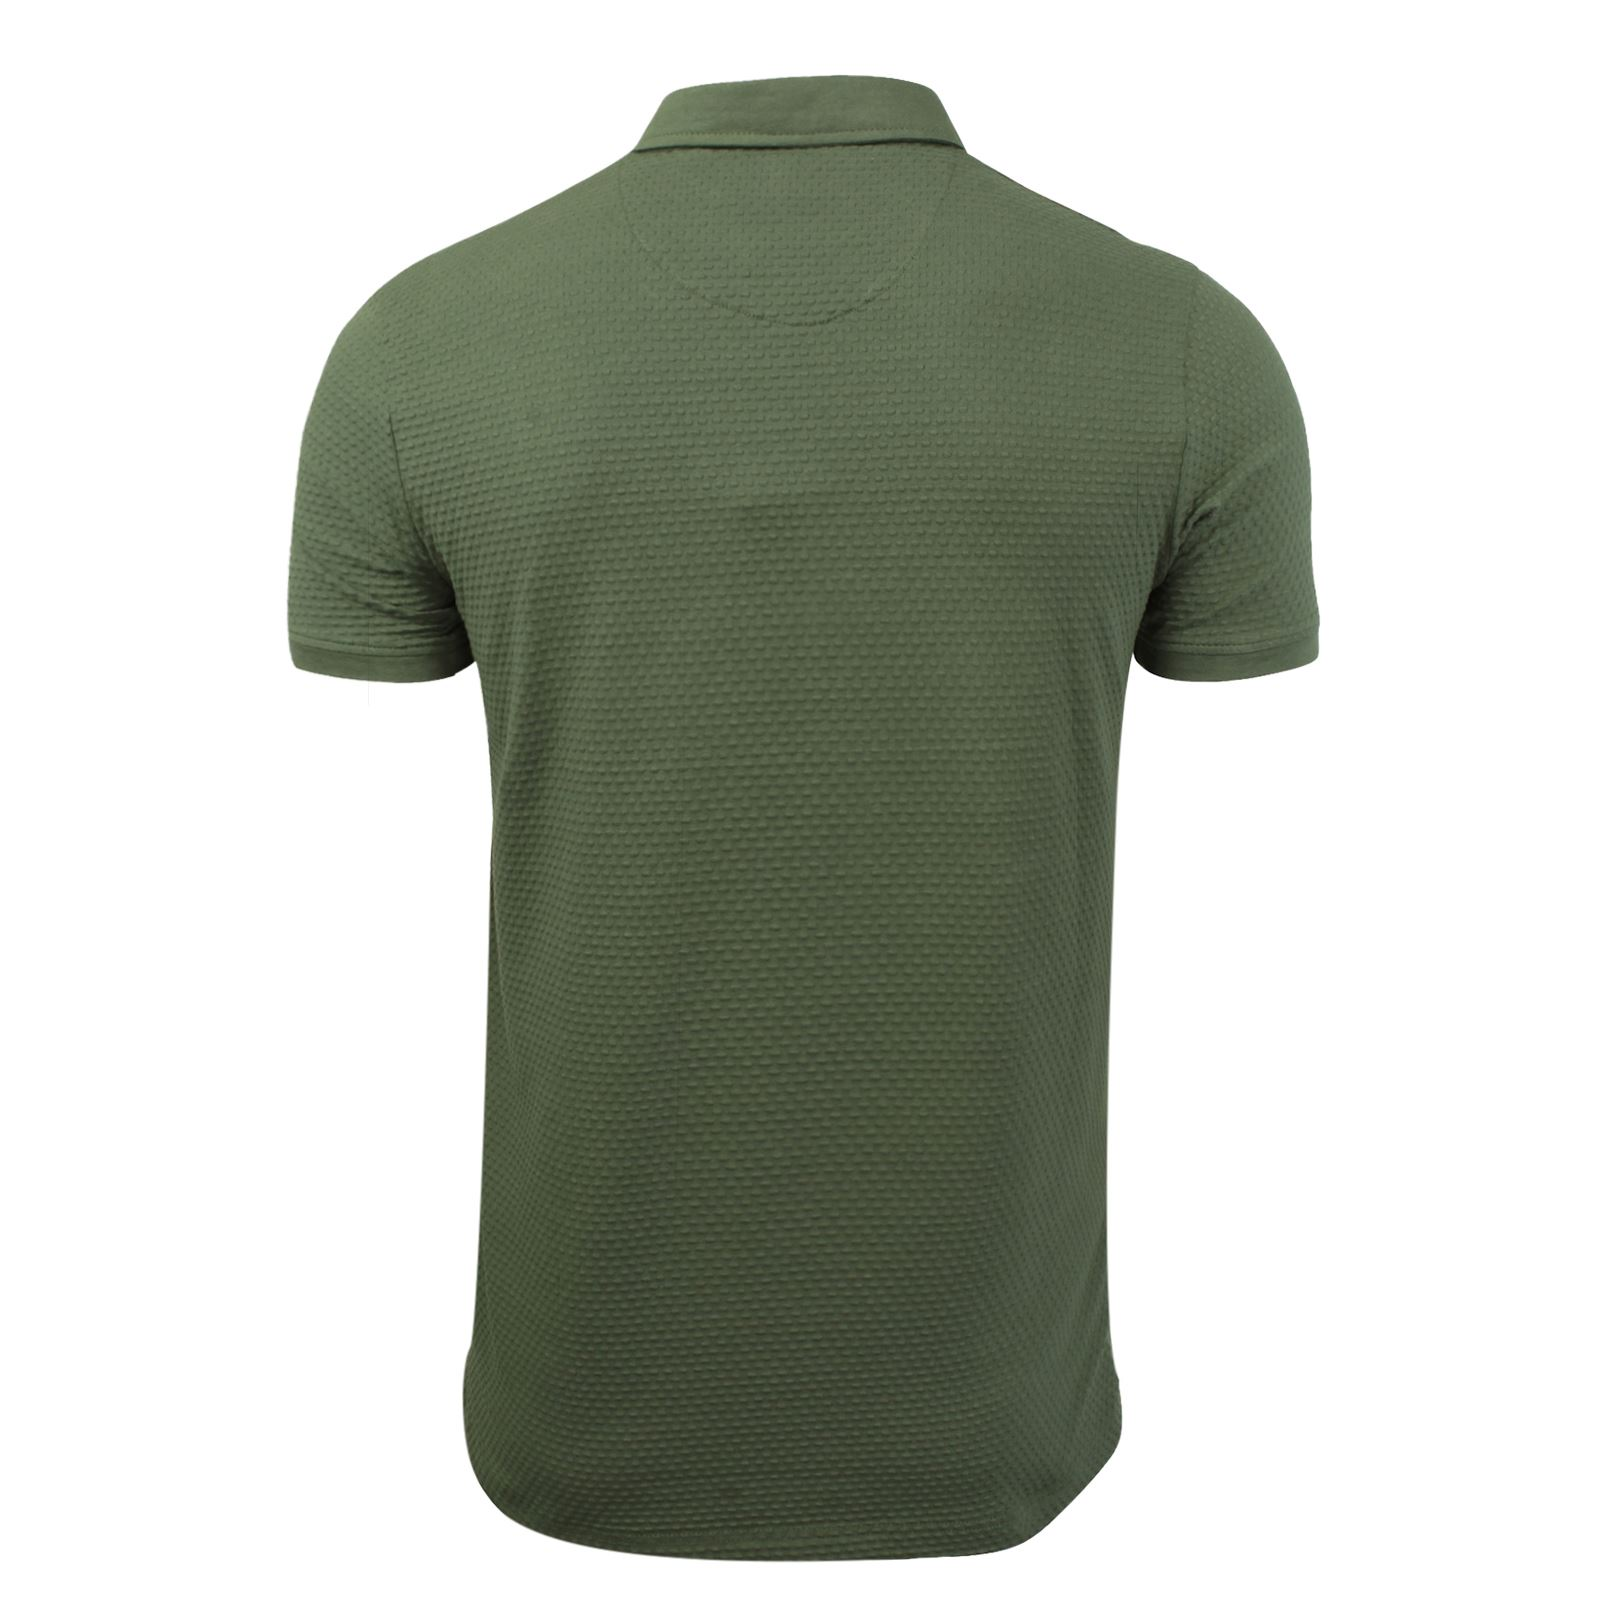 Brave-Soul-Glover-Mens-Polo-T-Shirt-Cotton-Collared-Short-Sleeve-Casual-Top thumbnail 89